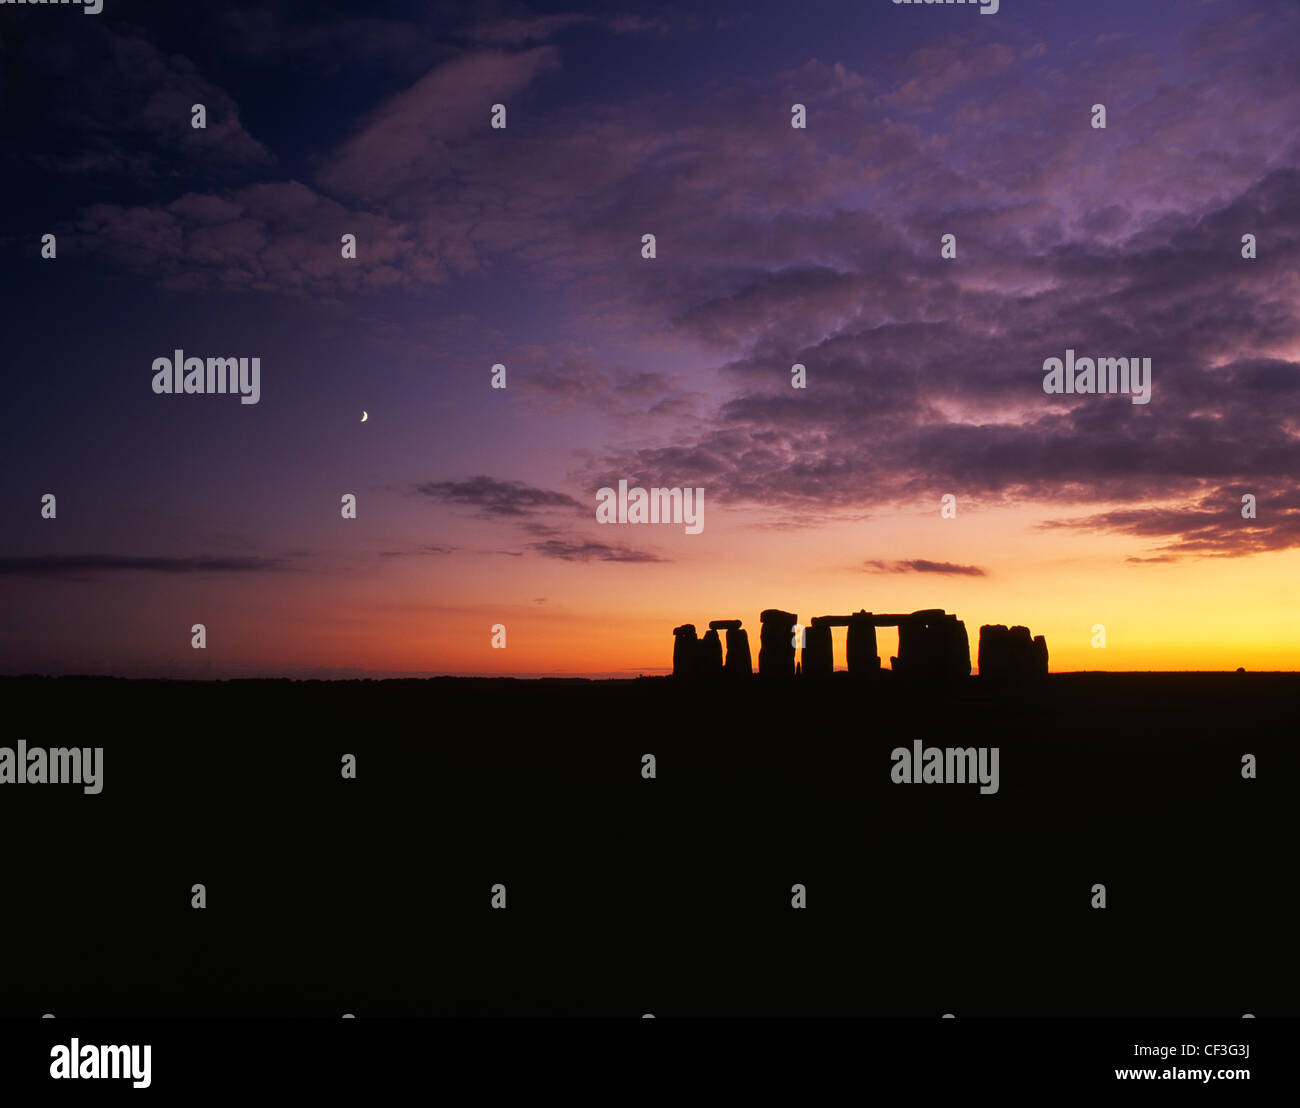 A wide landscape view of the Stonehenge trilithons silhouetted after sunset and moonrise. Stock Photo